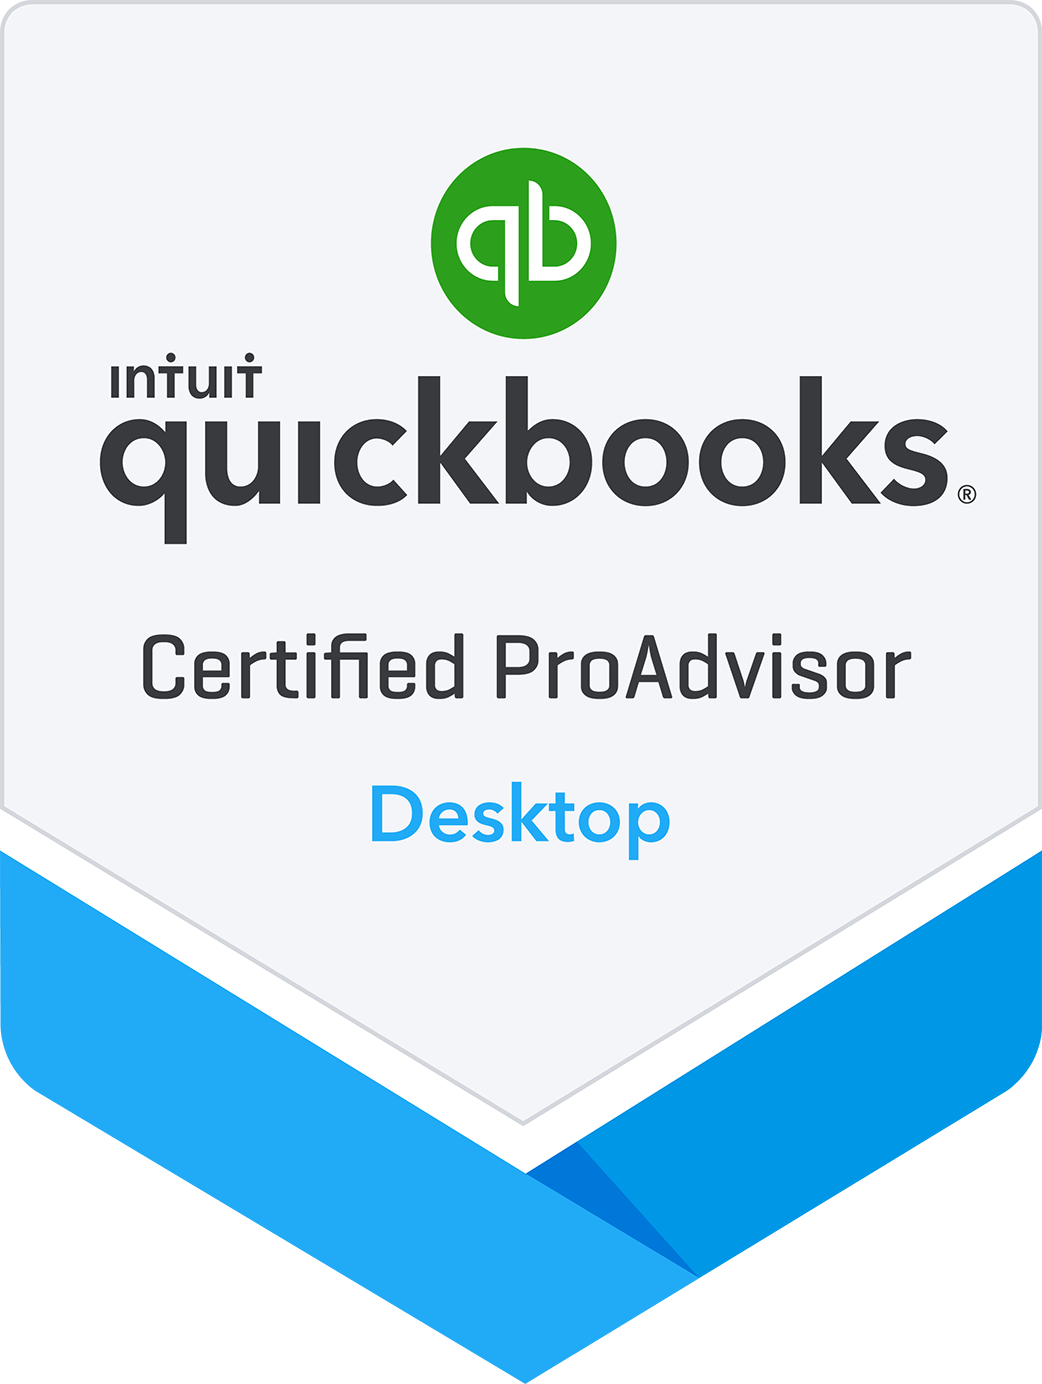 QuickBooks Proadvisor Certification, Ocala, FL, Celebration, FL, The Villages, FL and surrounding cities